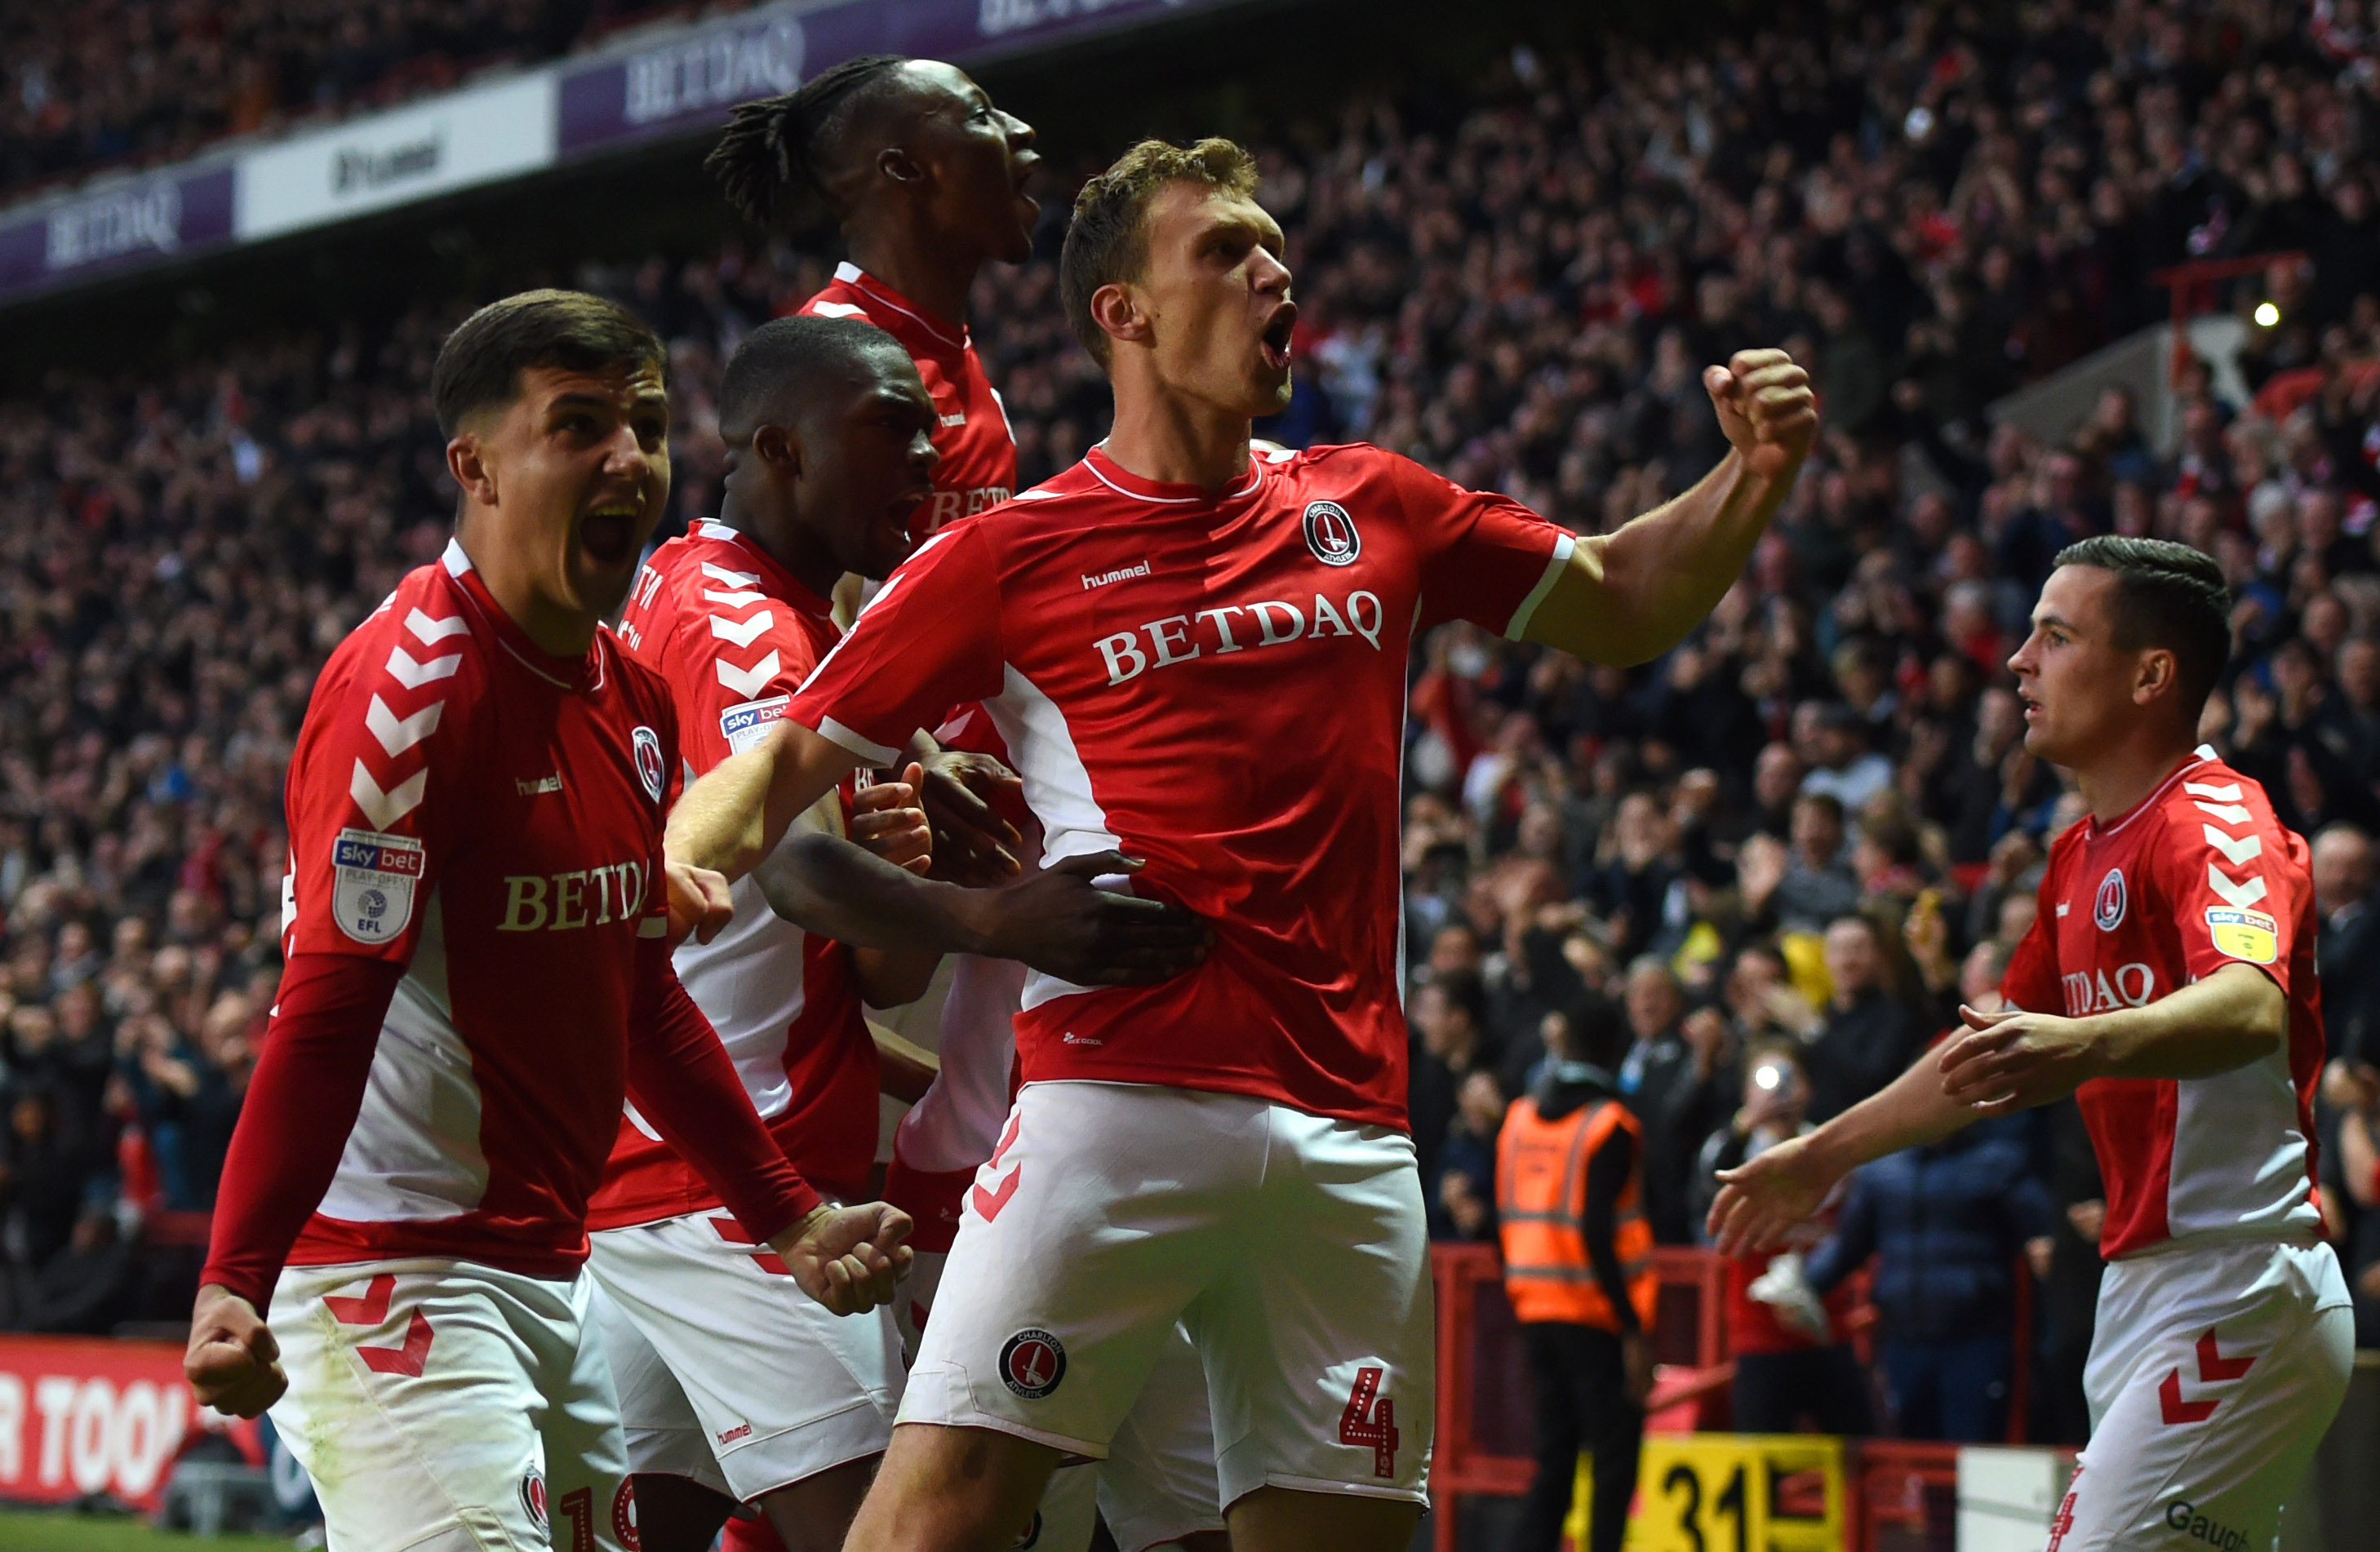 Does Bielik have a future at Arsenal after impressing at Charlton? (Photo courtesy: AFP/Getty)